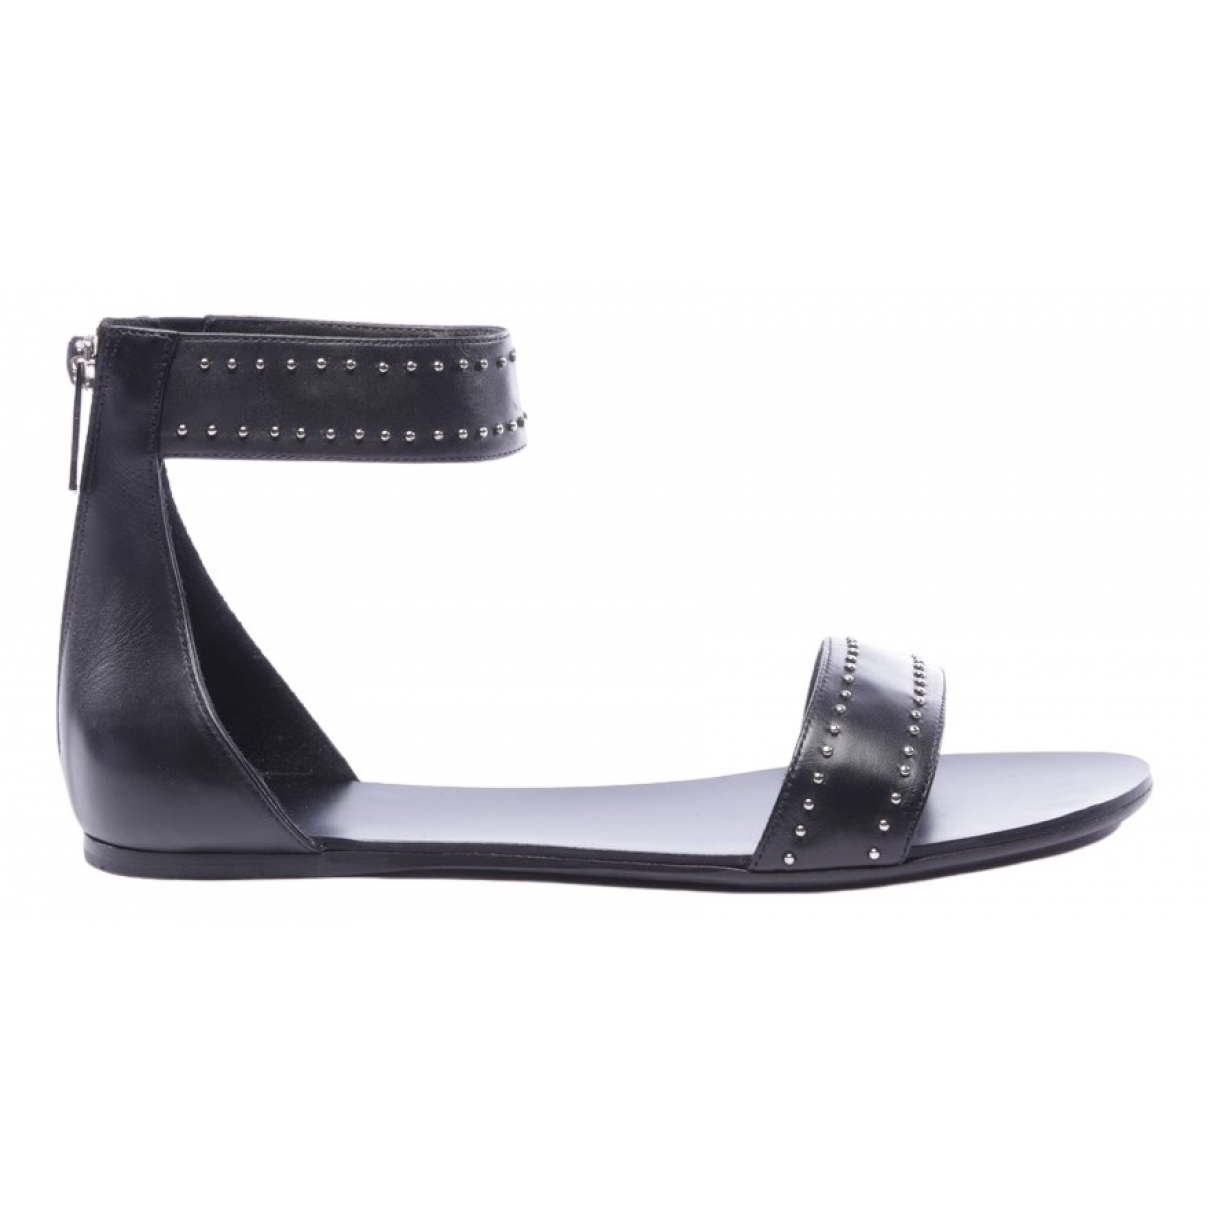 Anine Bing \N Black Leather Sandals for Women 37 EU